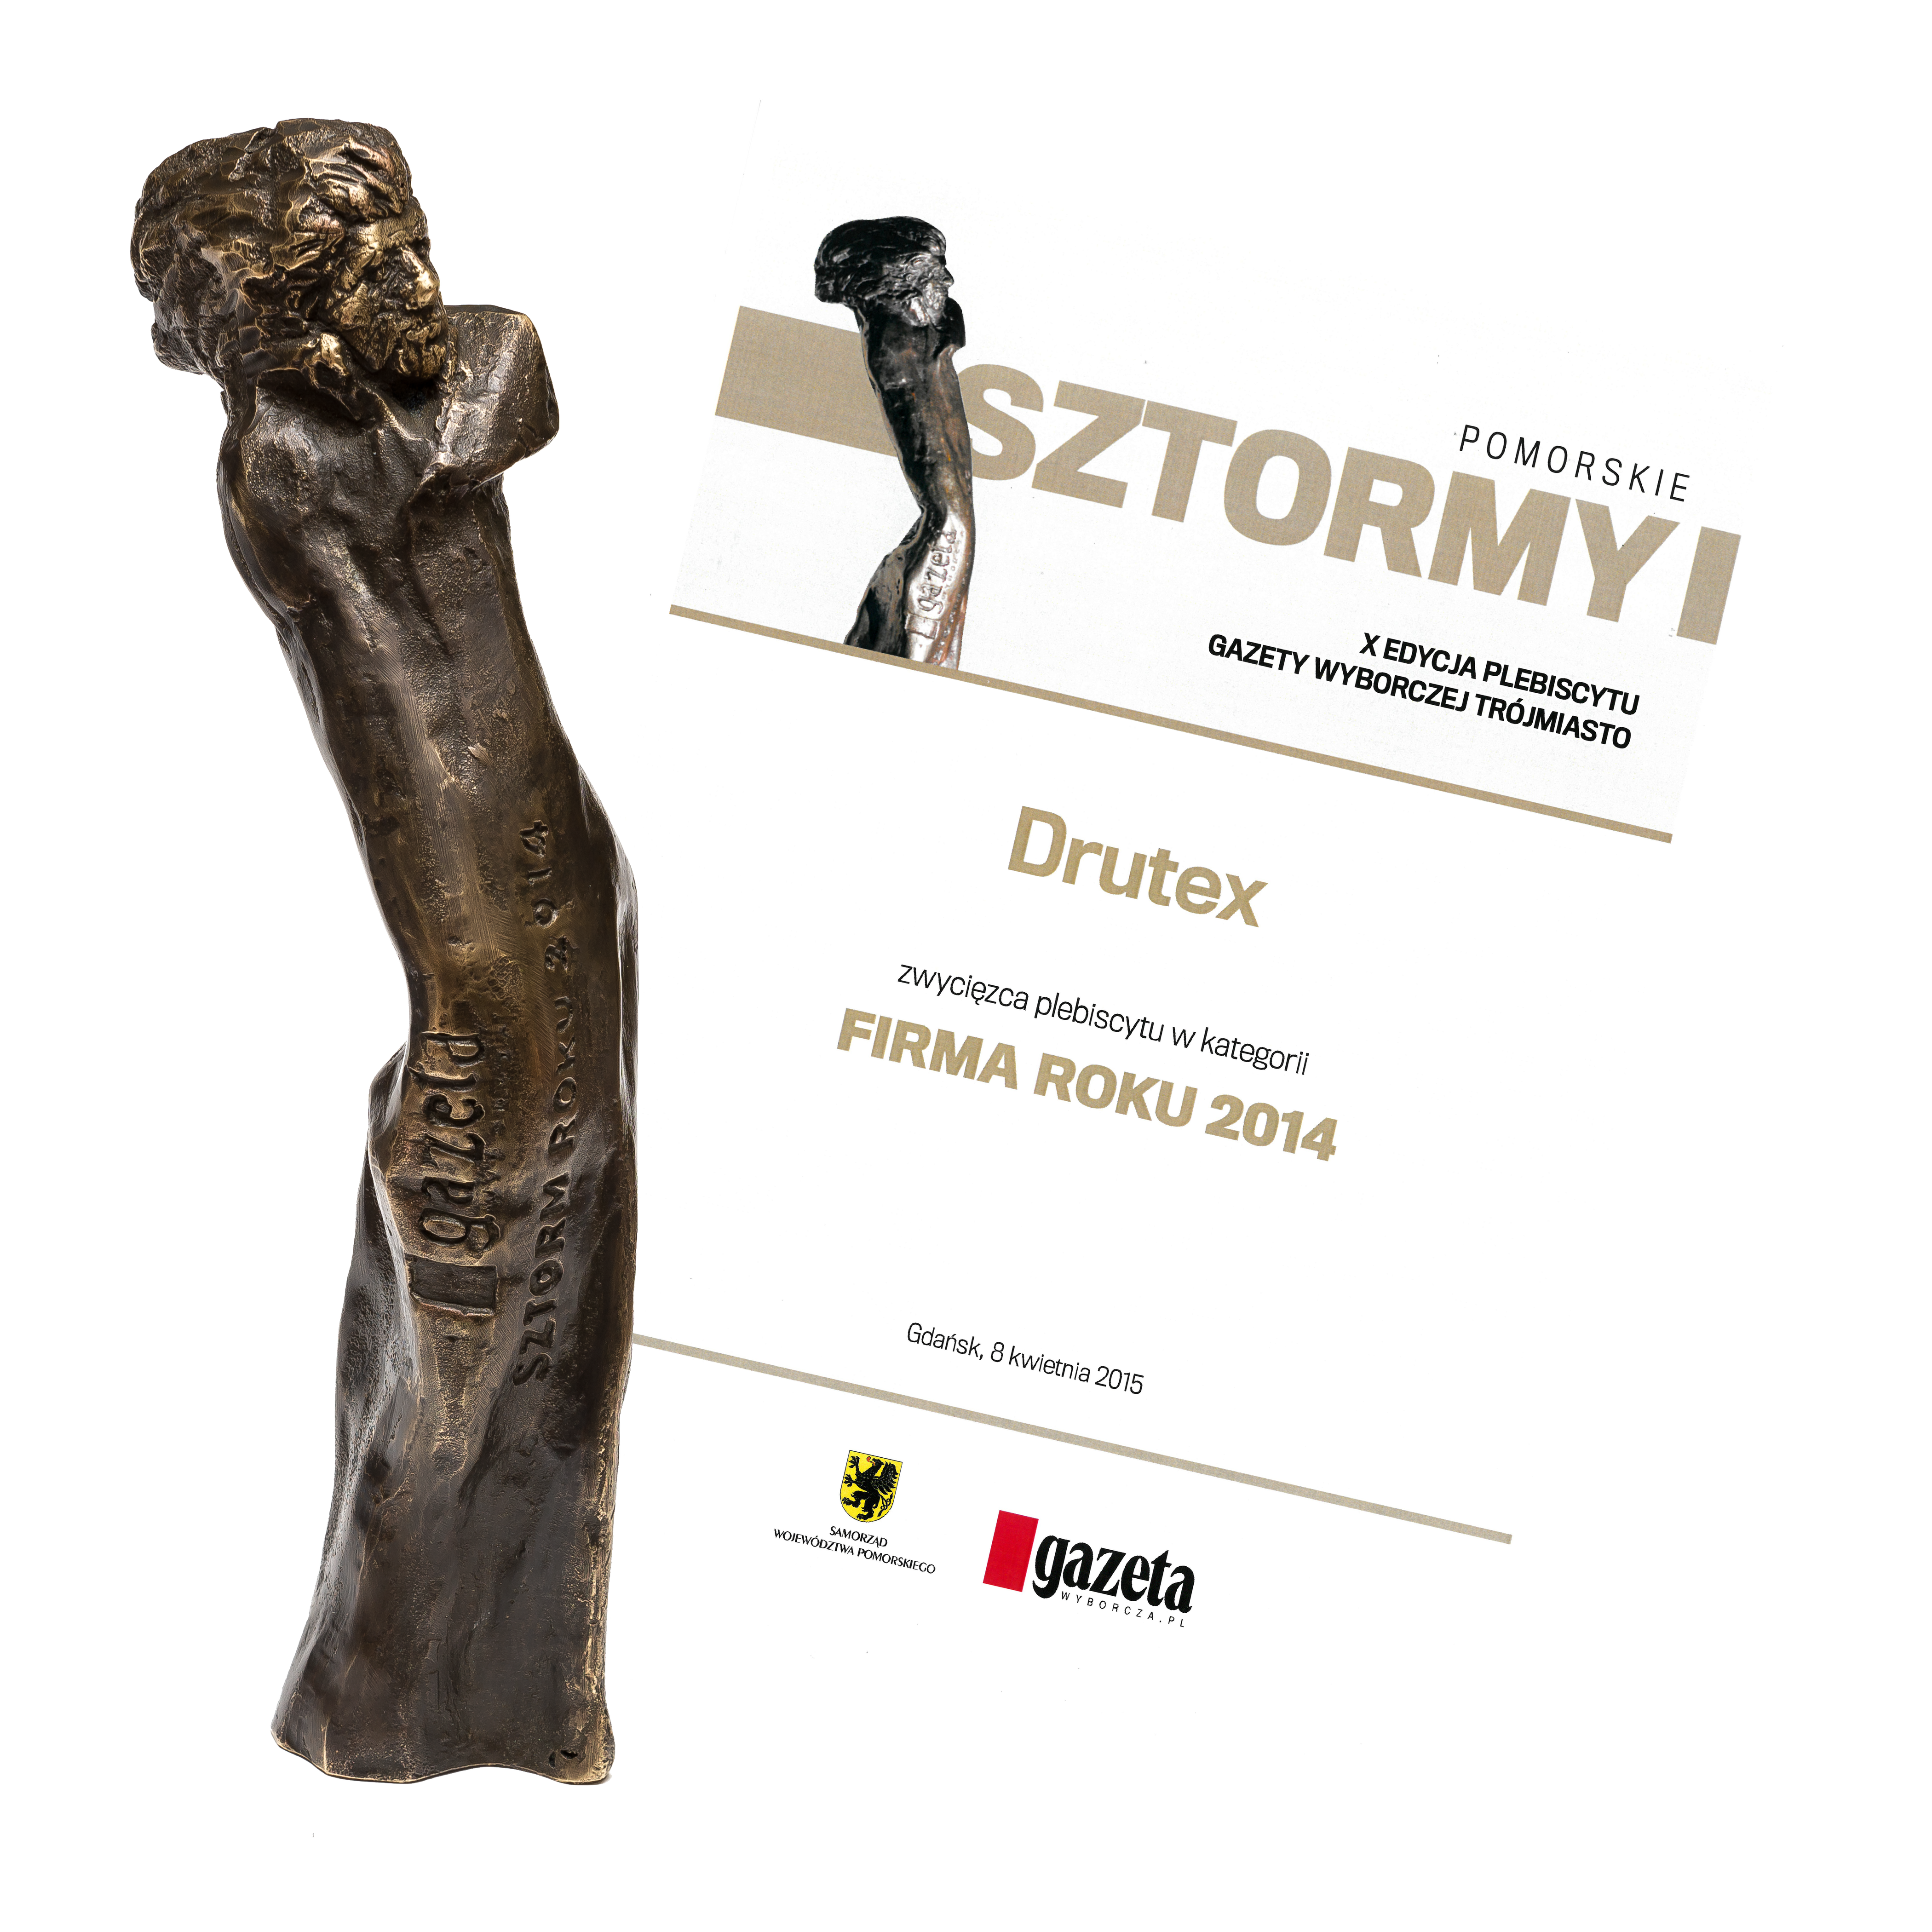 DRUTEX – the Company if the Year!